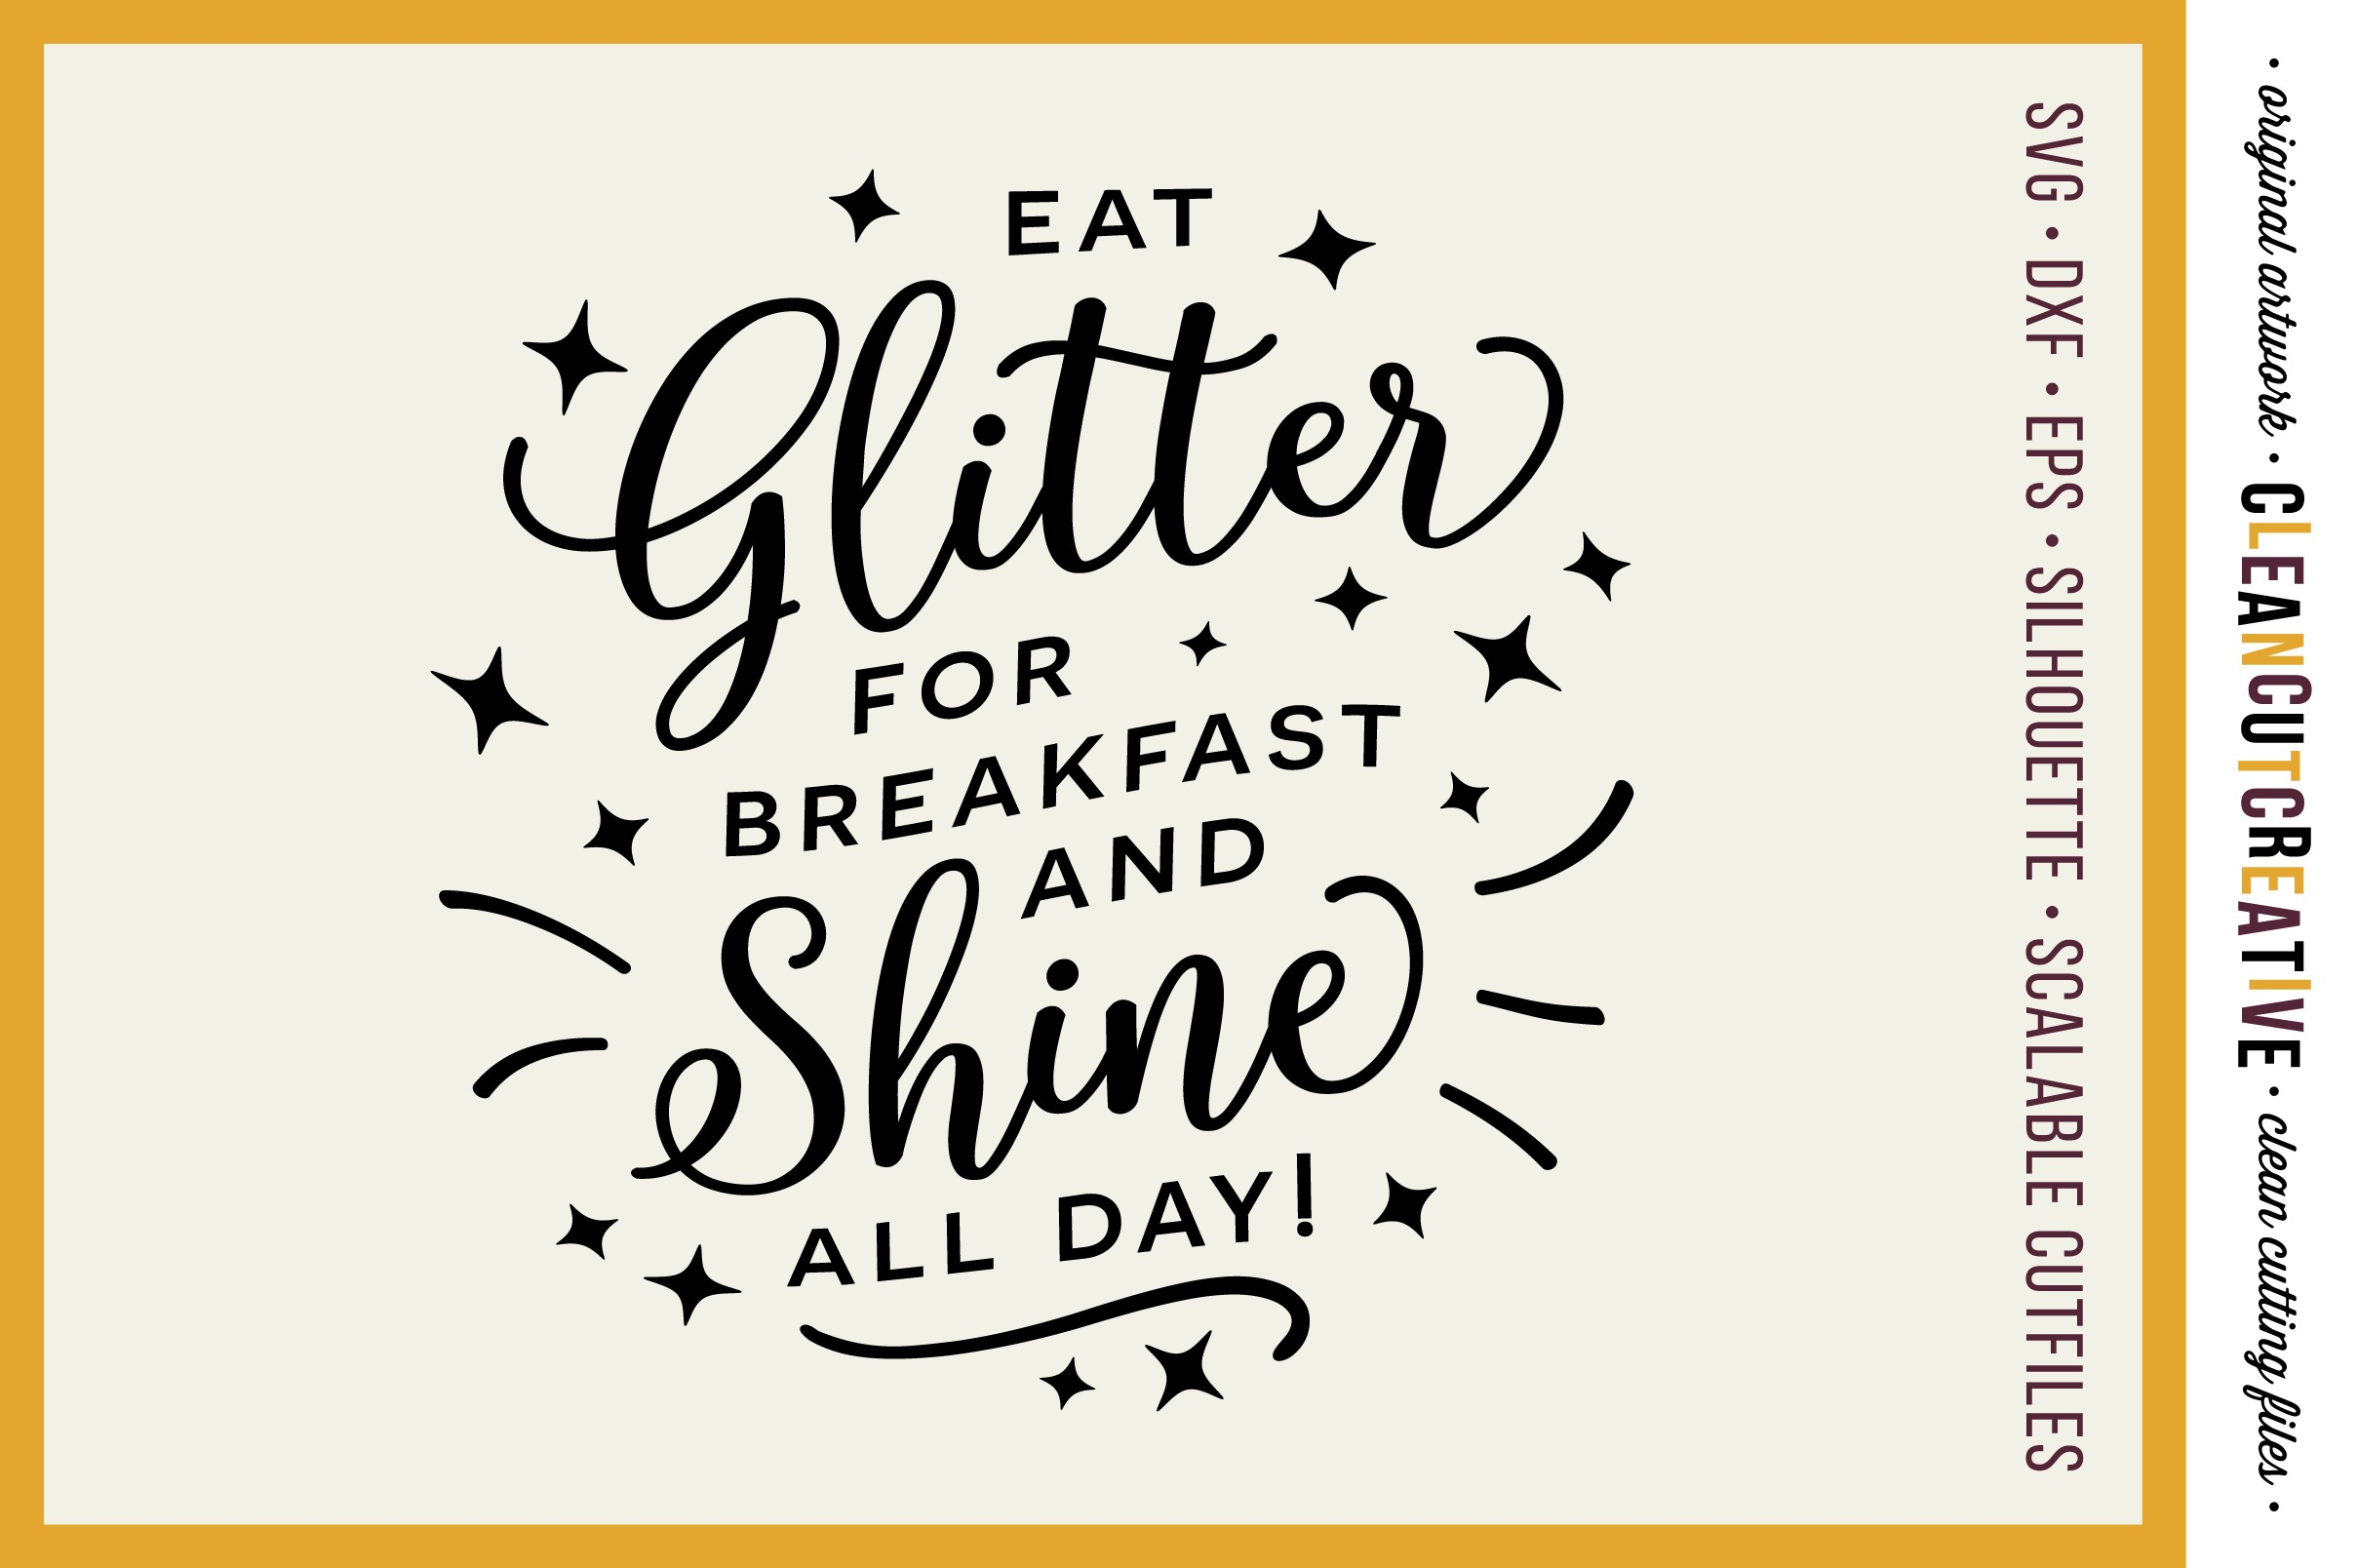 EAT GLITTER FOR BREAKFAST AND SHINE ALL DAY! - SVG DXF EPS PNG - Cricut & Silhouette - clean cutting files example image 1